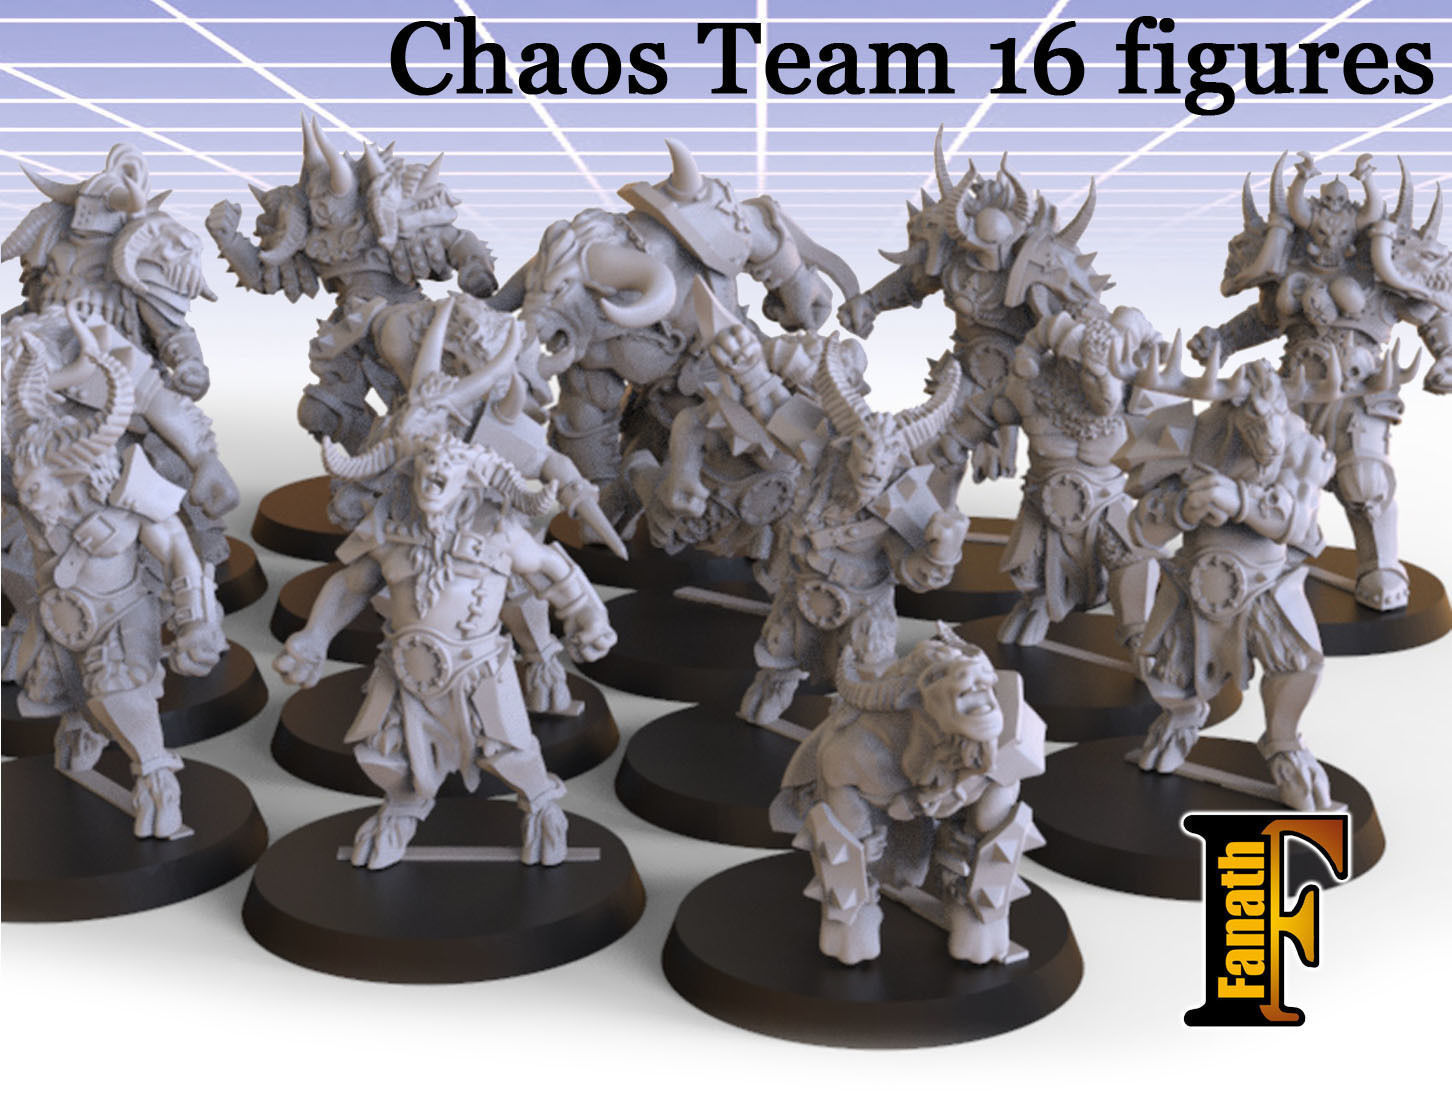 Chaos Team 16 figures